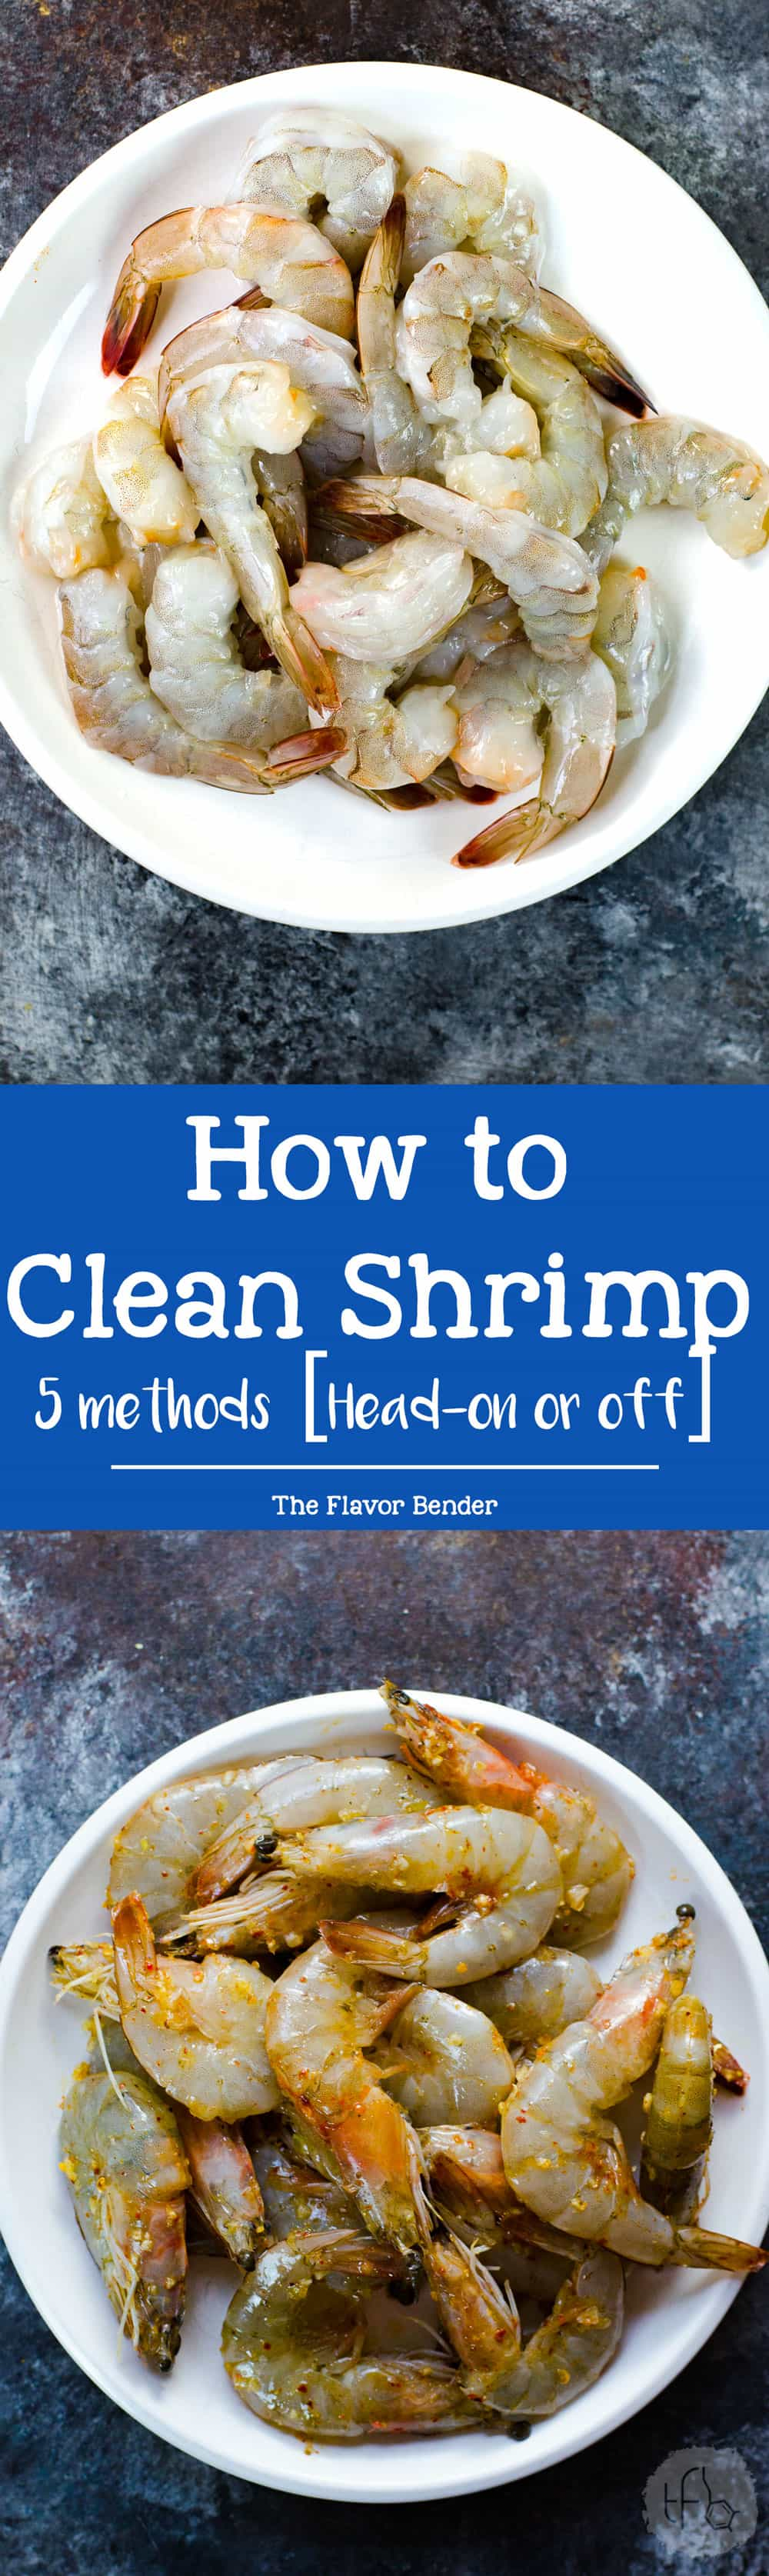 How to clean Shrimp/ Prawns - 5 easy ways to clean shrimp or prawns, Head on or head removed